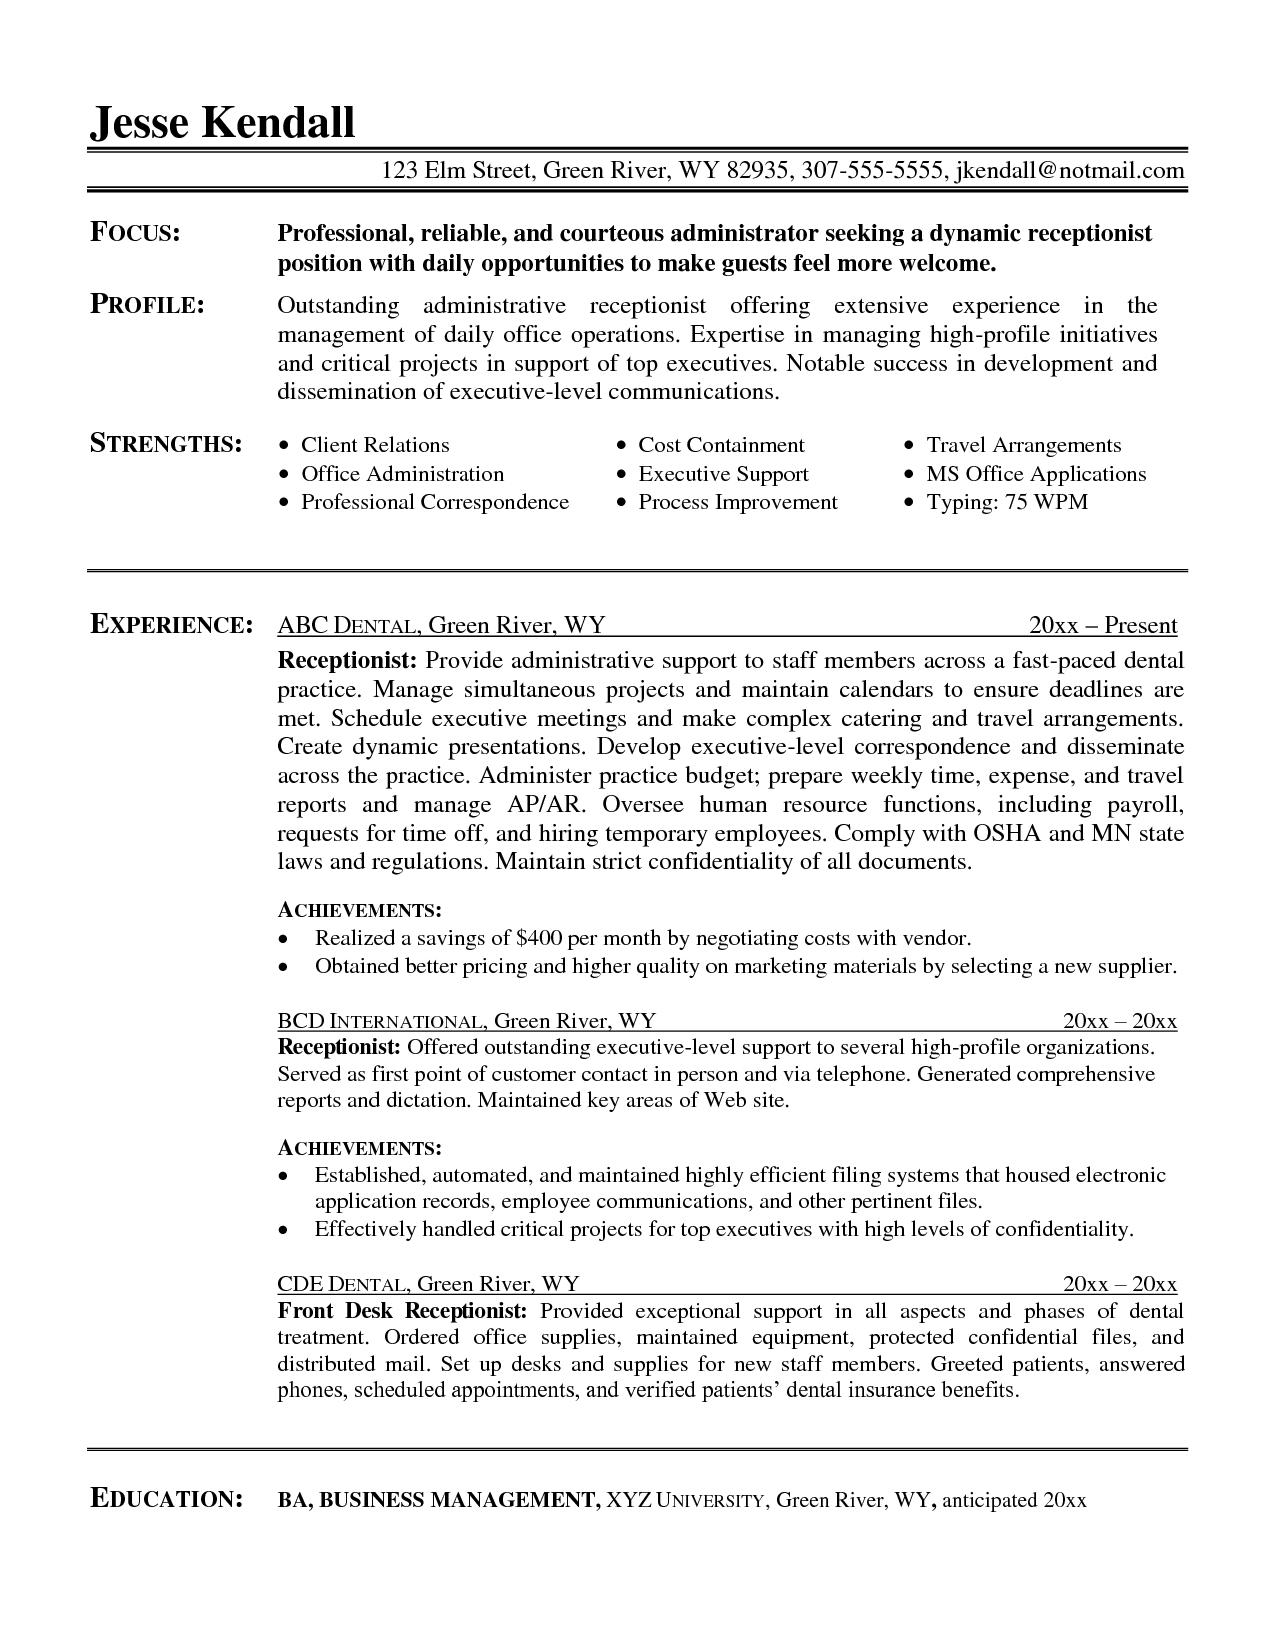 Free Resume Templates For Receptionist Position Freeresumetemplates